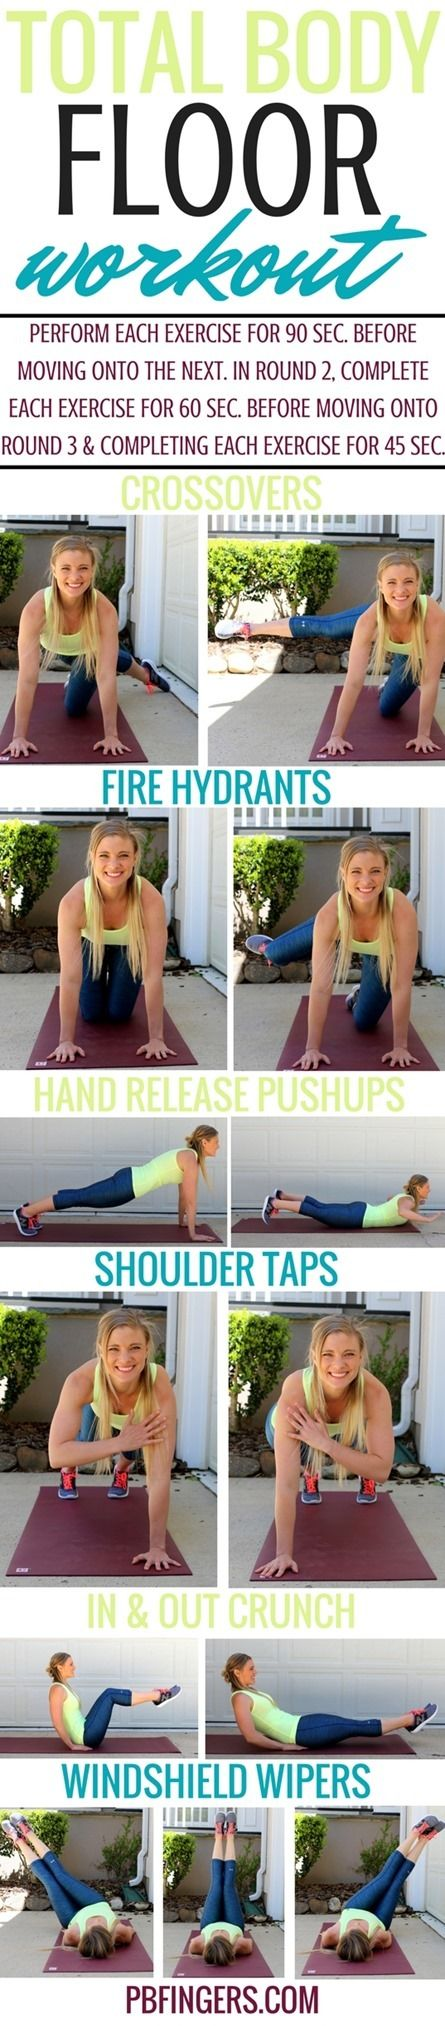 Total Body FLOOR WORKOUT http://www.pbfingers.com/slug This Total Body Floor Workout is perfect for days when you don't have any equipment to work with and cannot make any noise during a workout! It's a totally silent workout that will work your upper body, lower body and core through three rounds of exercises that will have your muscles feeling the burn!